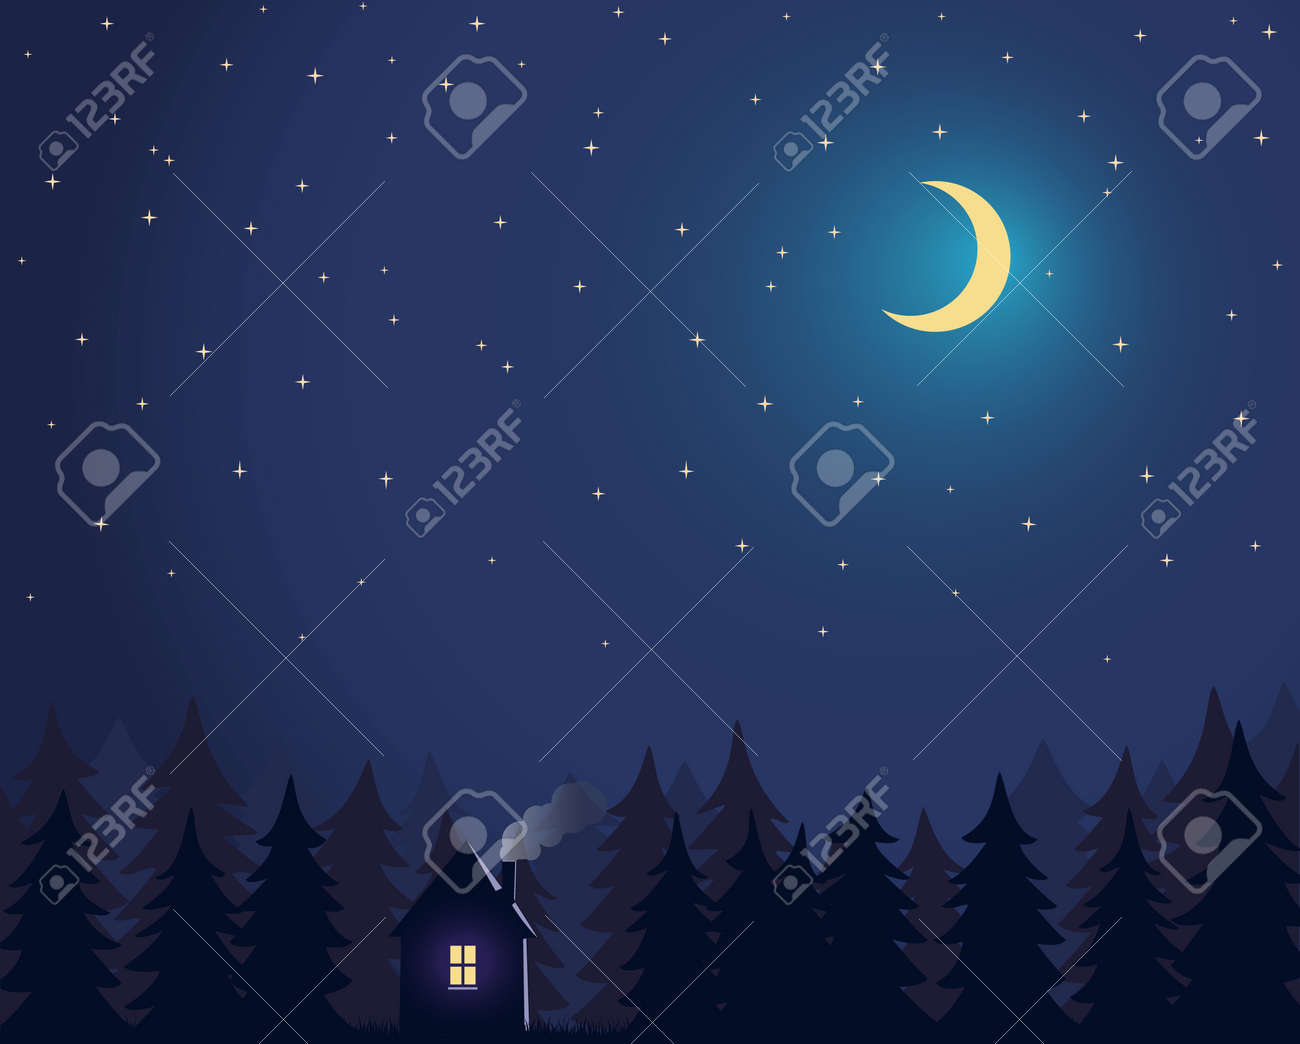 House and tree and night sky with stars and moon - 172543950